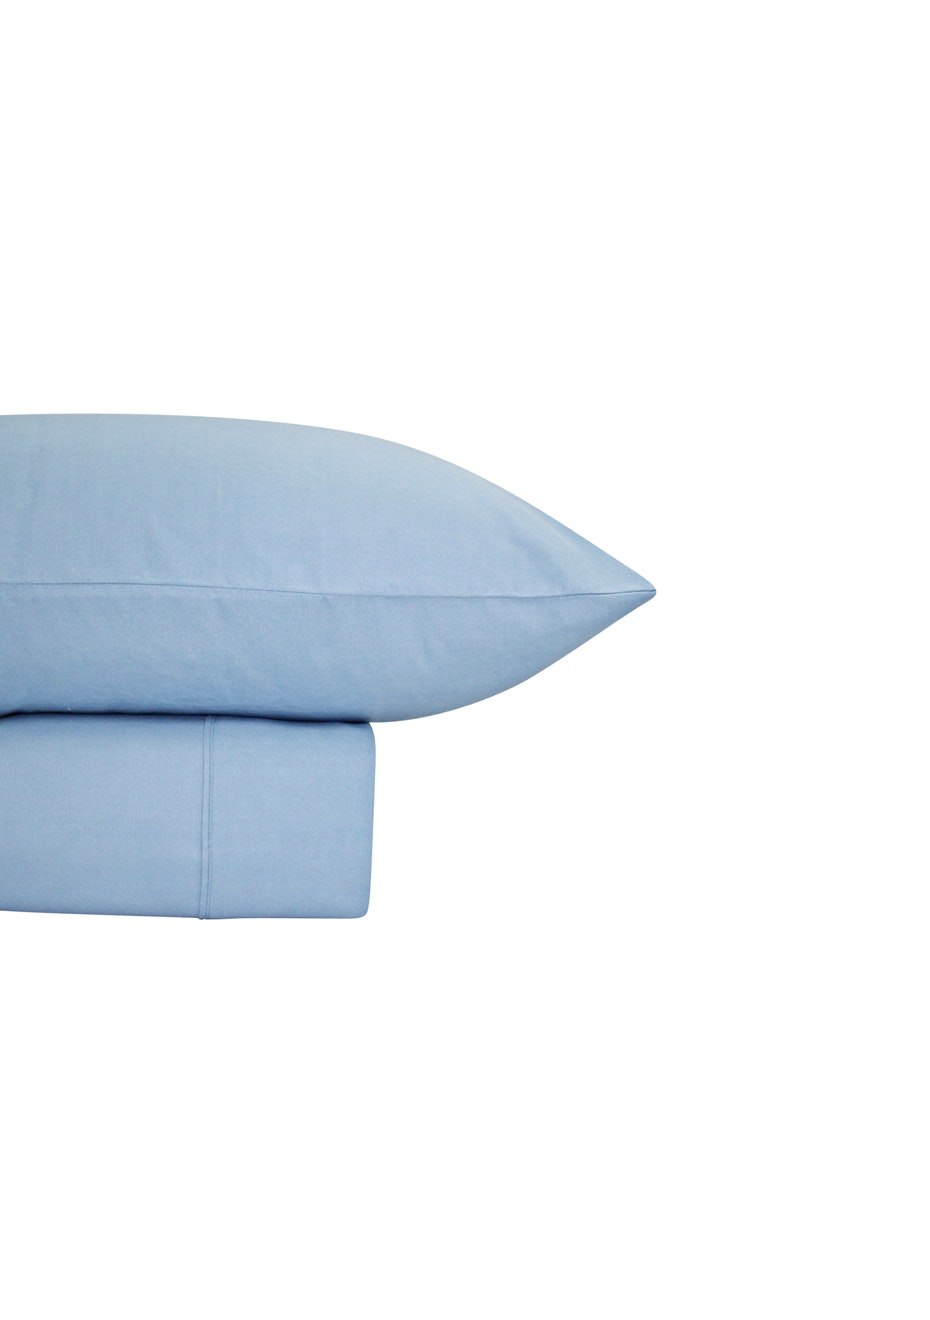 Thermal Flannel Sheet Sets - Bay Blue - Single Bed